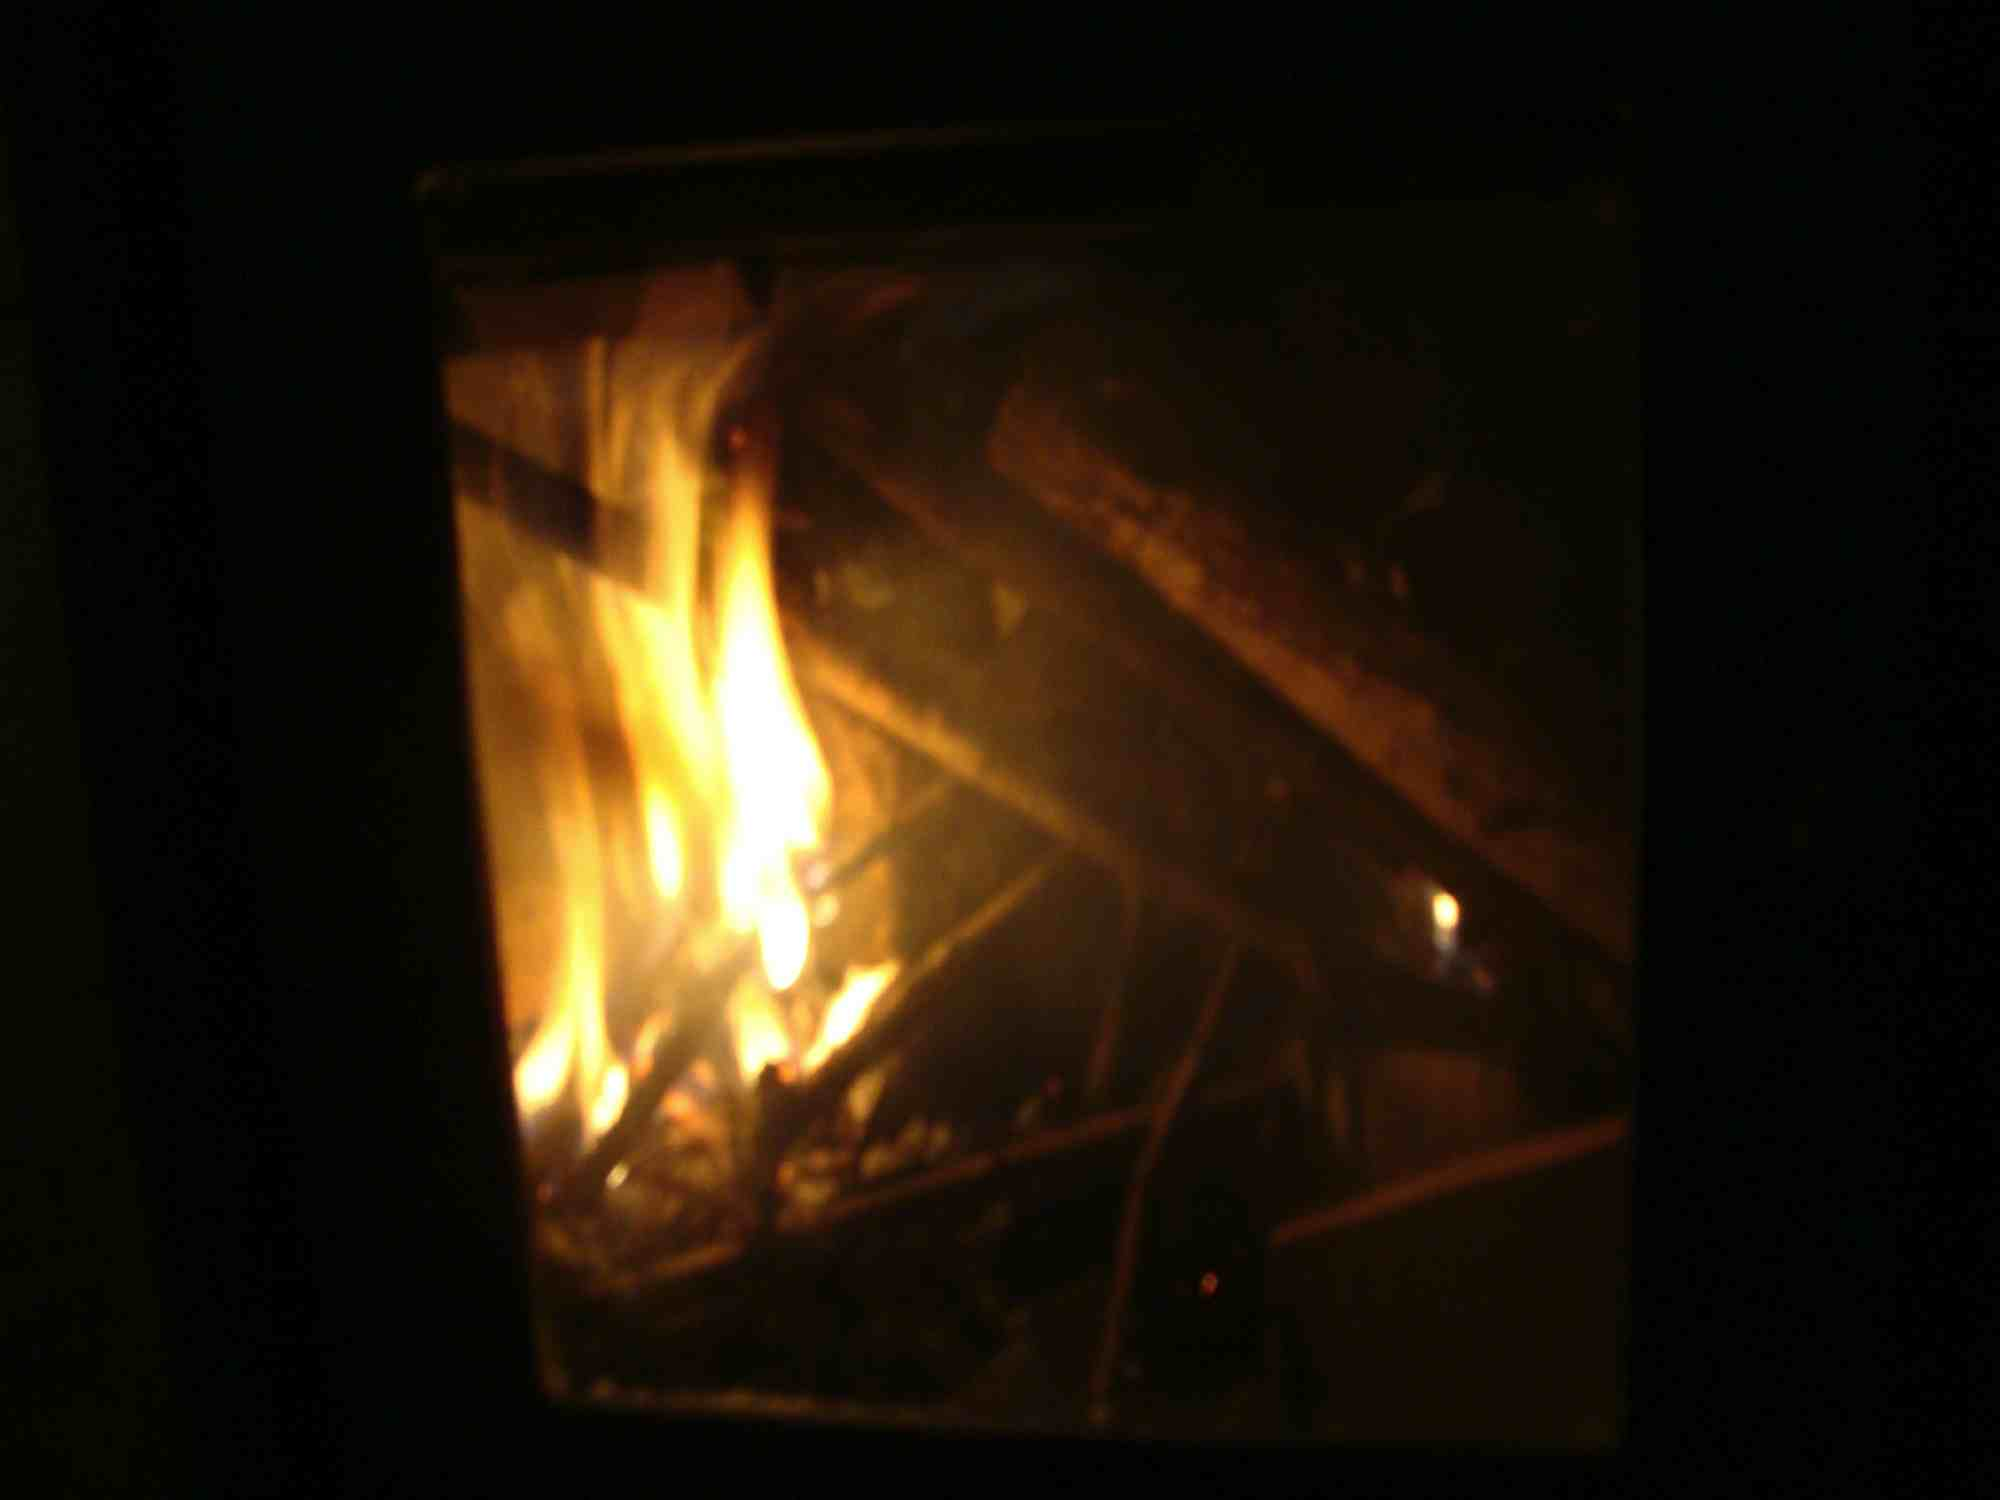 The woodstove flames after 3 minutes.